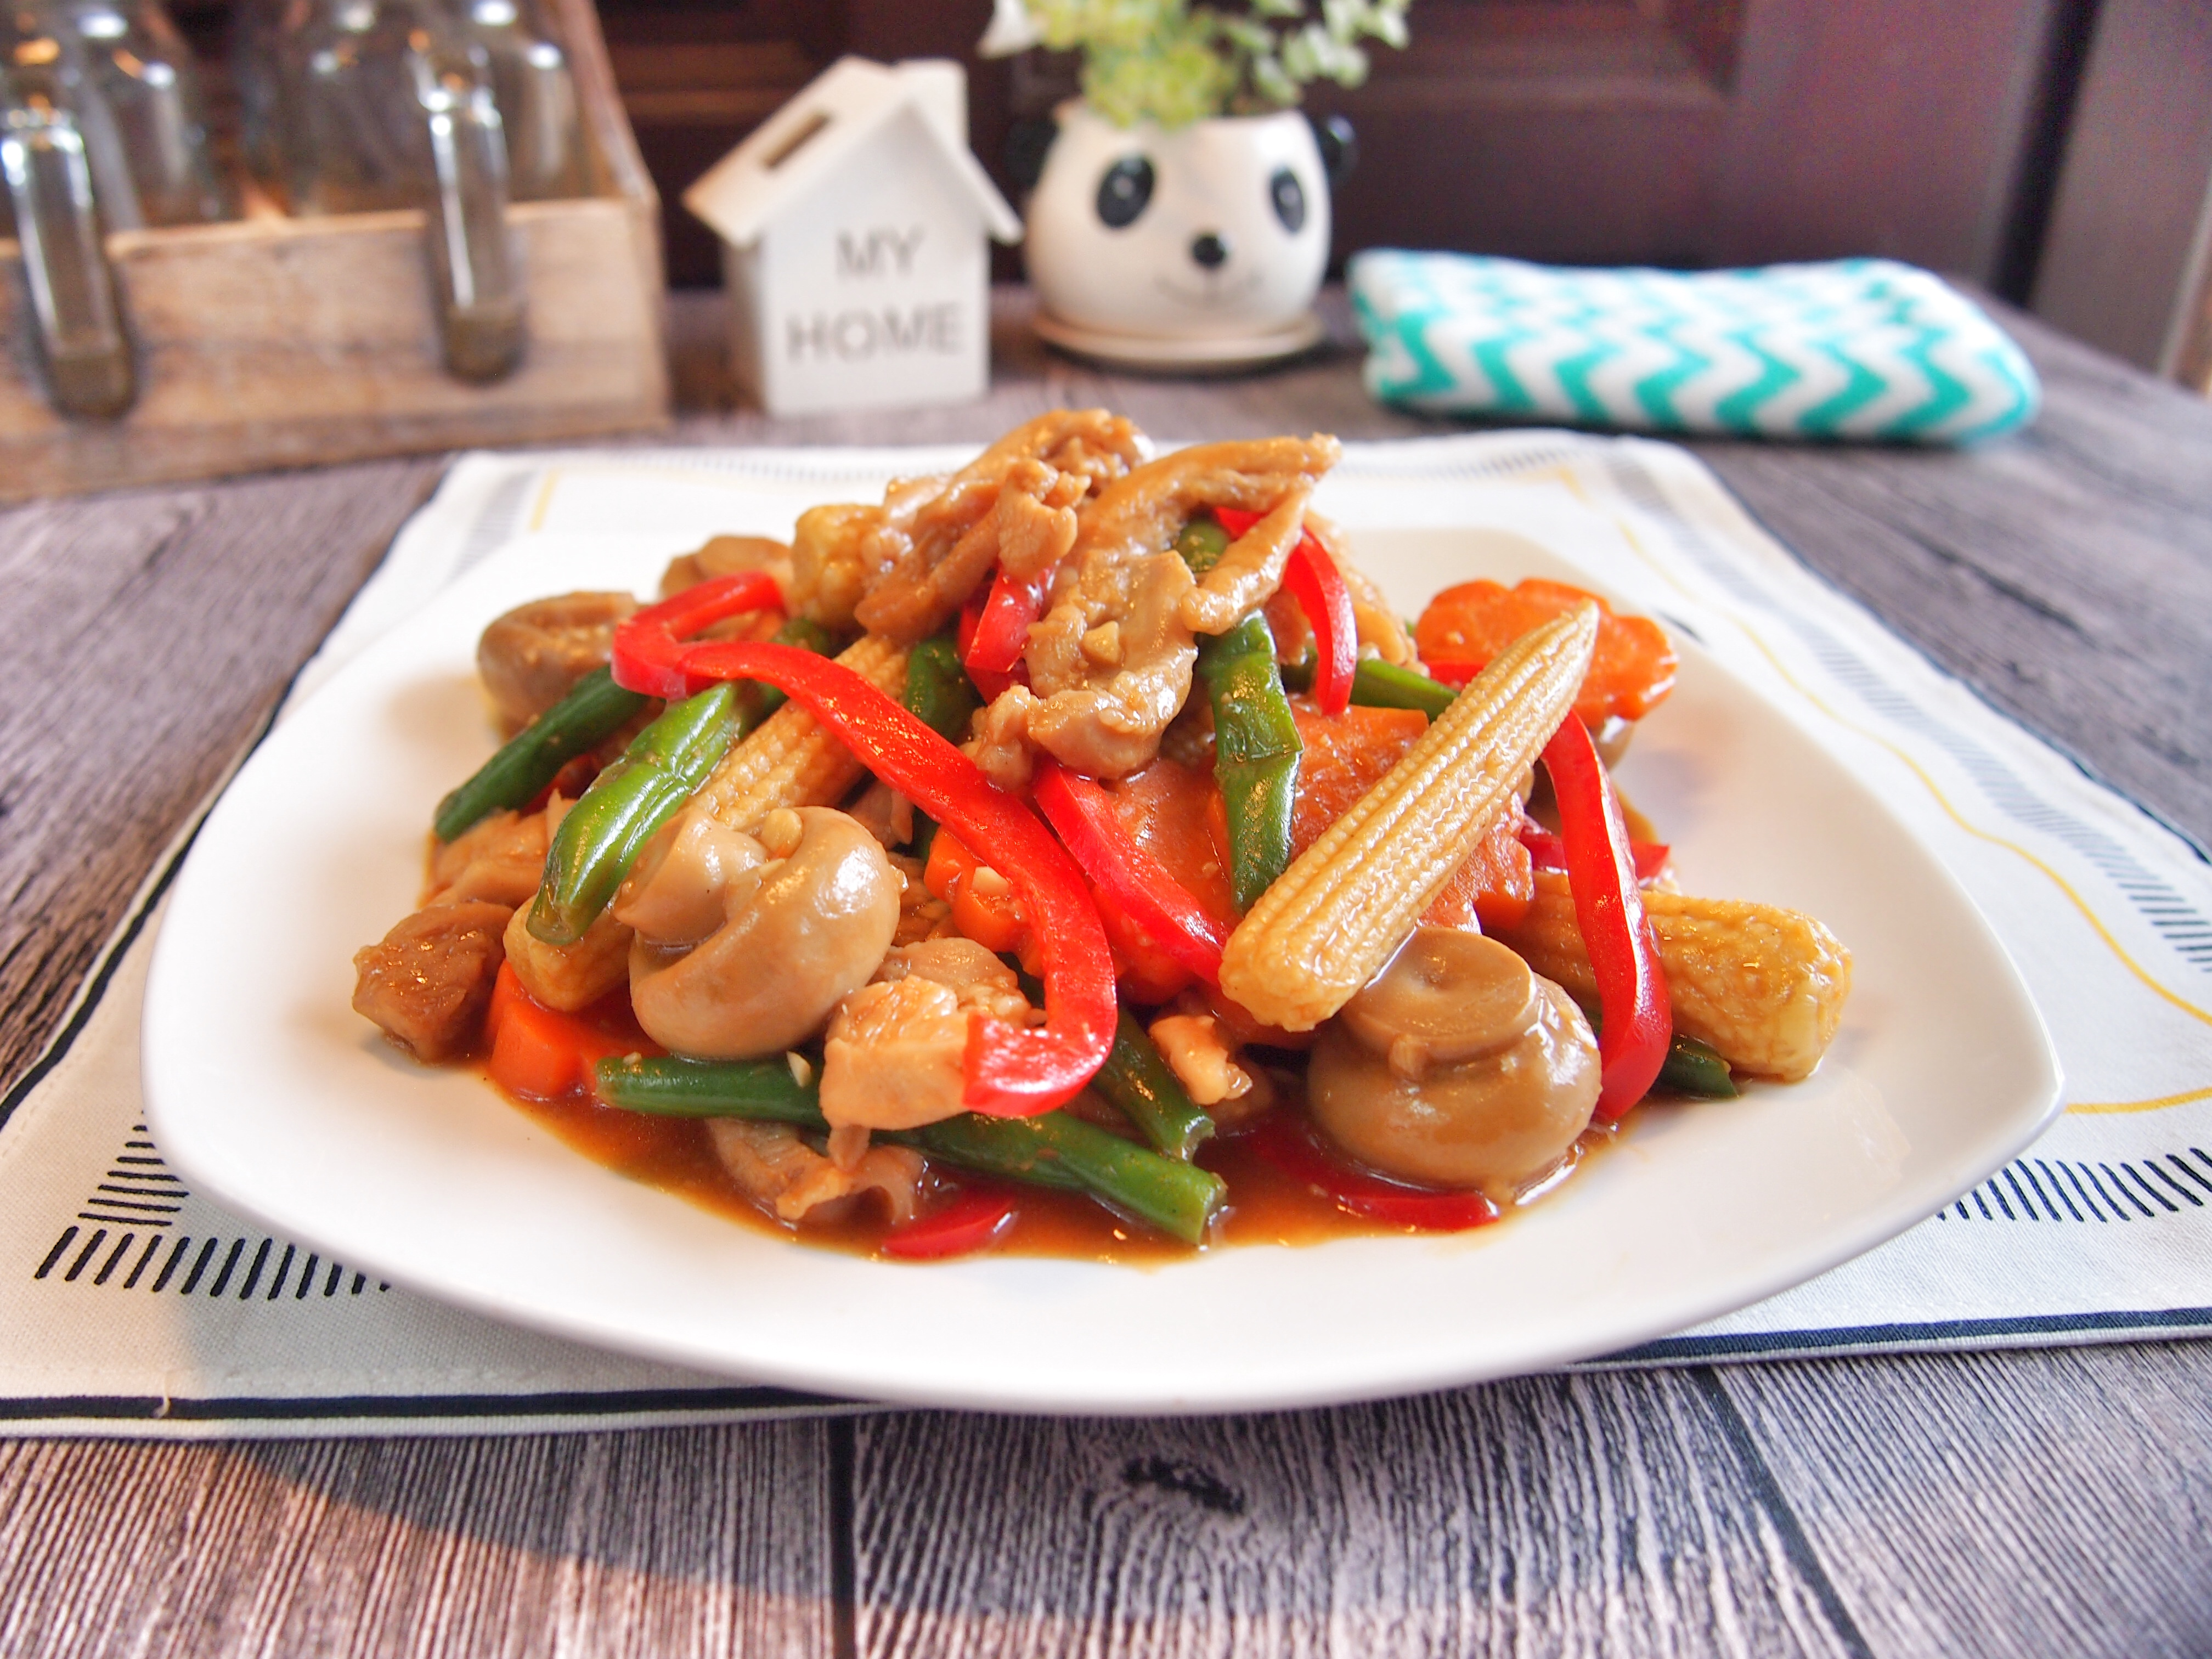 SUPER EASY CHINESE RECIPE: Stir Fried Chicken w/ Vegetables